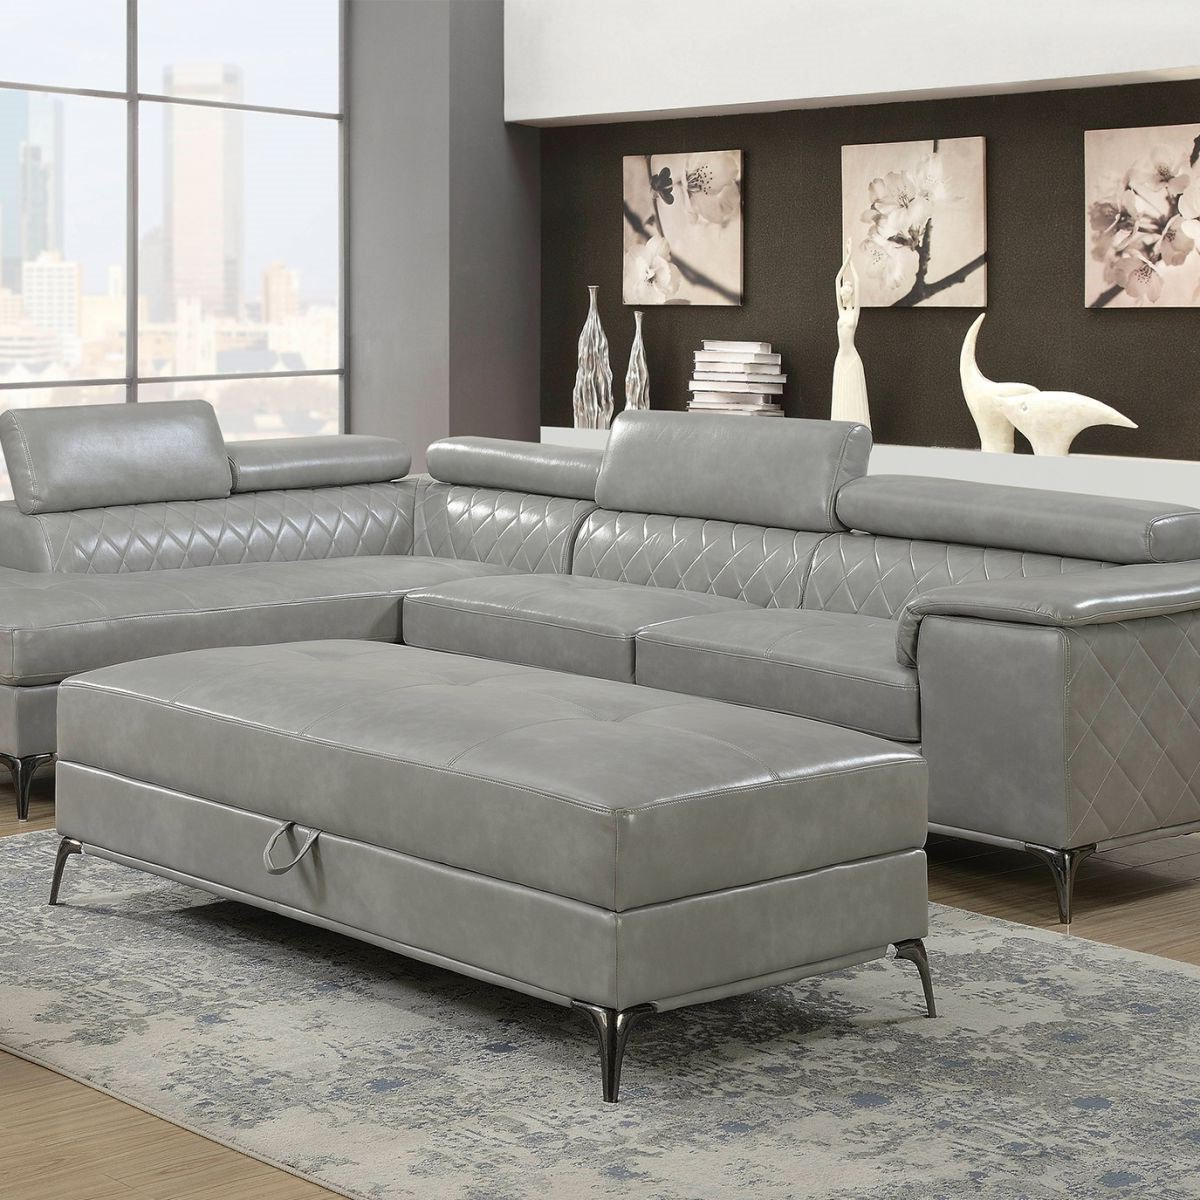 Cosmos Grey 2 Piece Sectionals With Laf Chaise Intended For Most Current Worthington Grey 2 Pc Sectional & Ottoman (View 10 of 20)